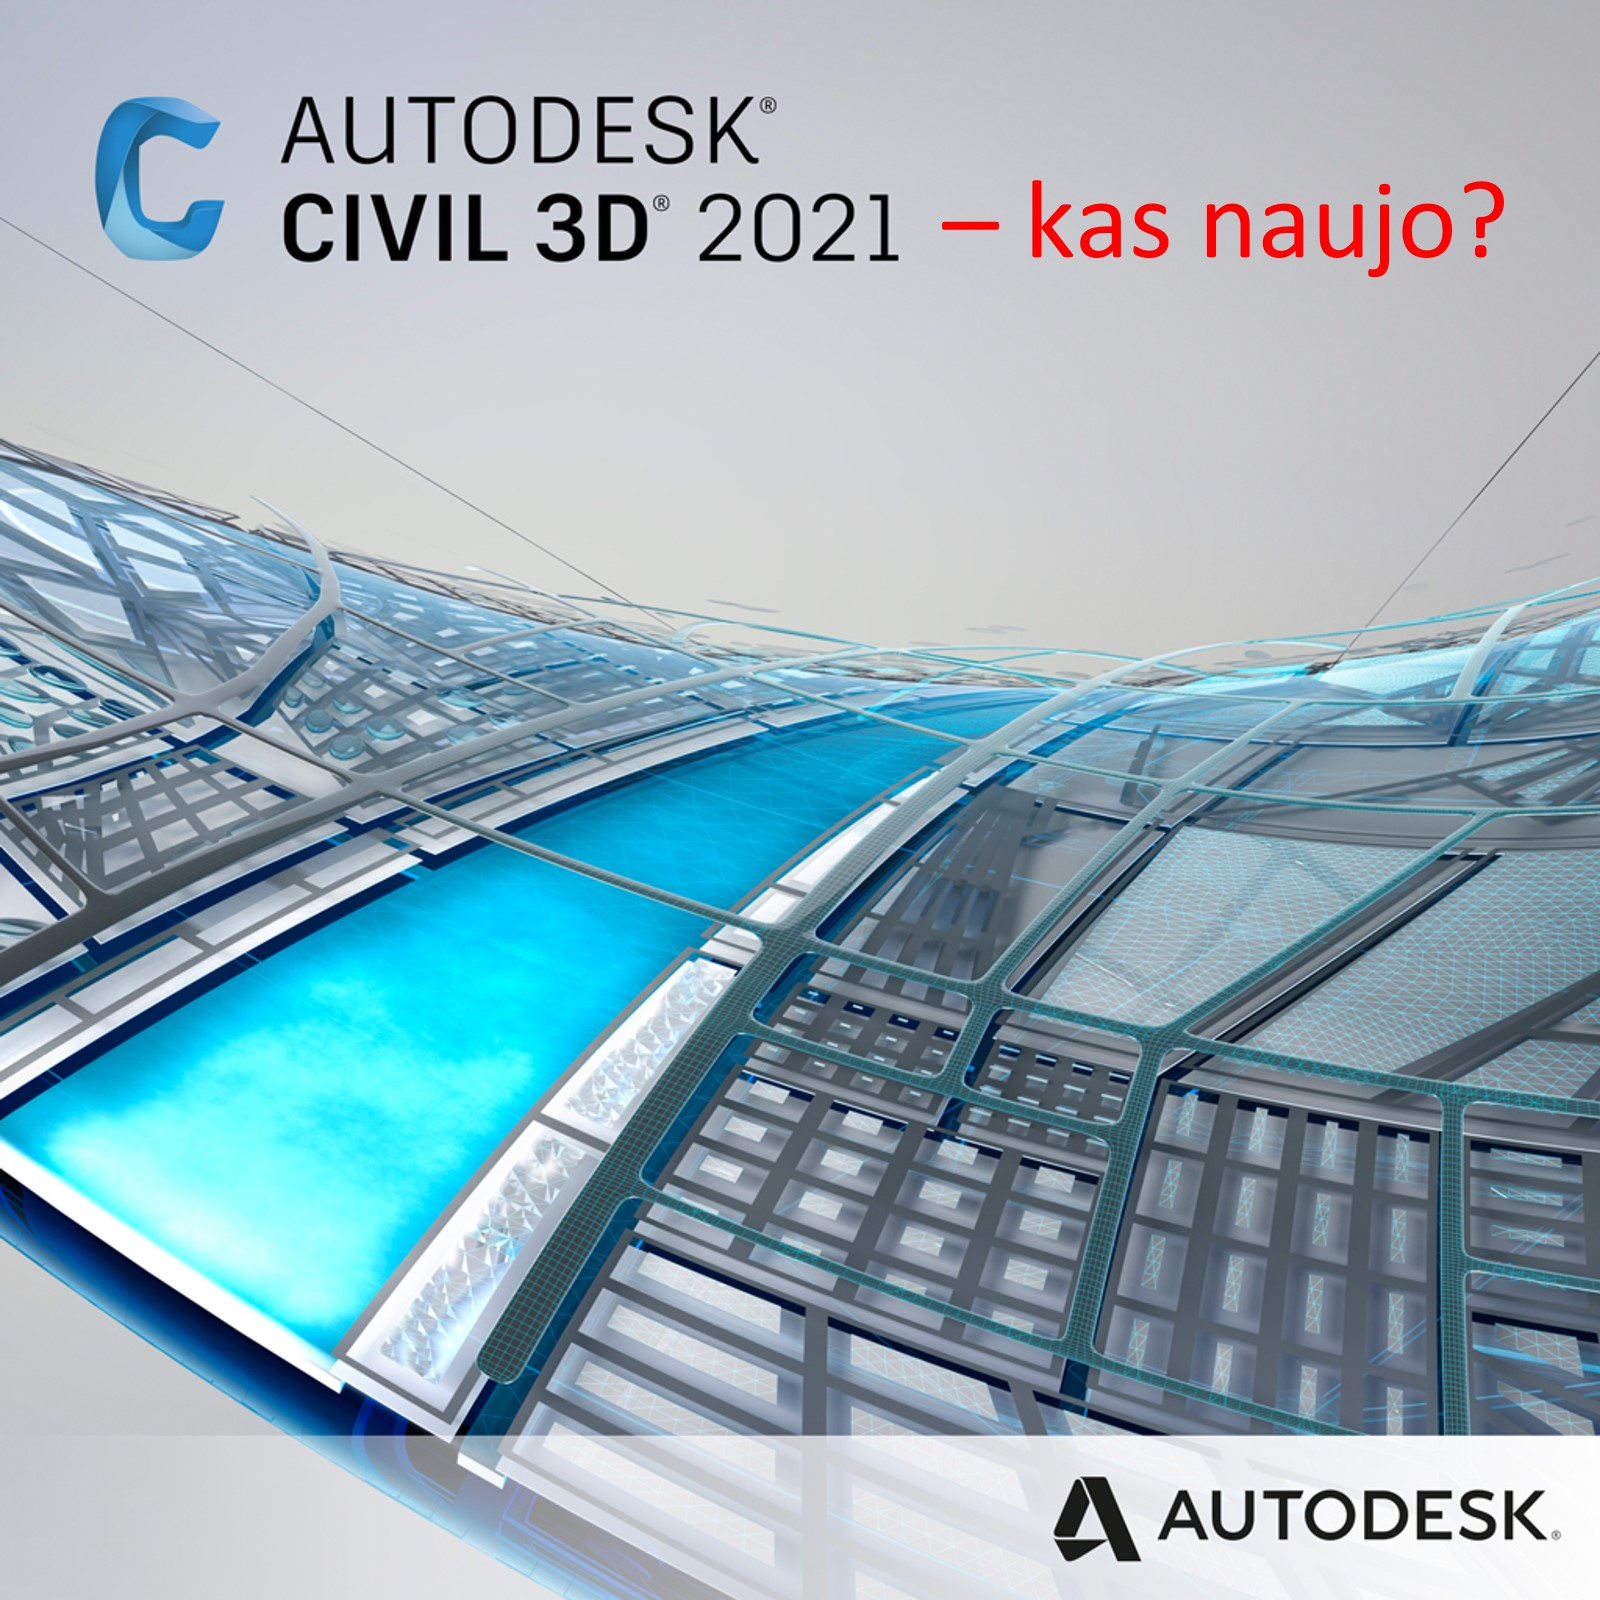 Autodesk Civil 3D 2021 naujoves | AGACAD